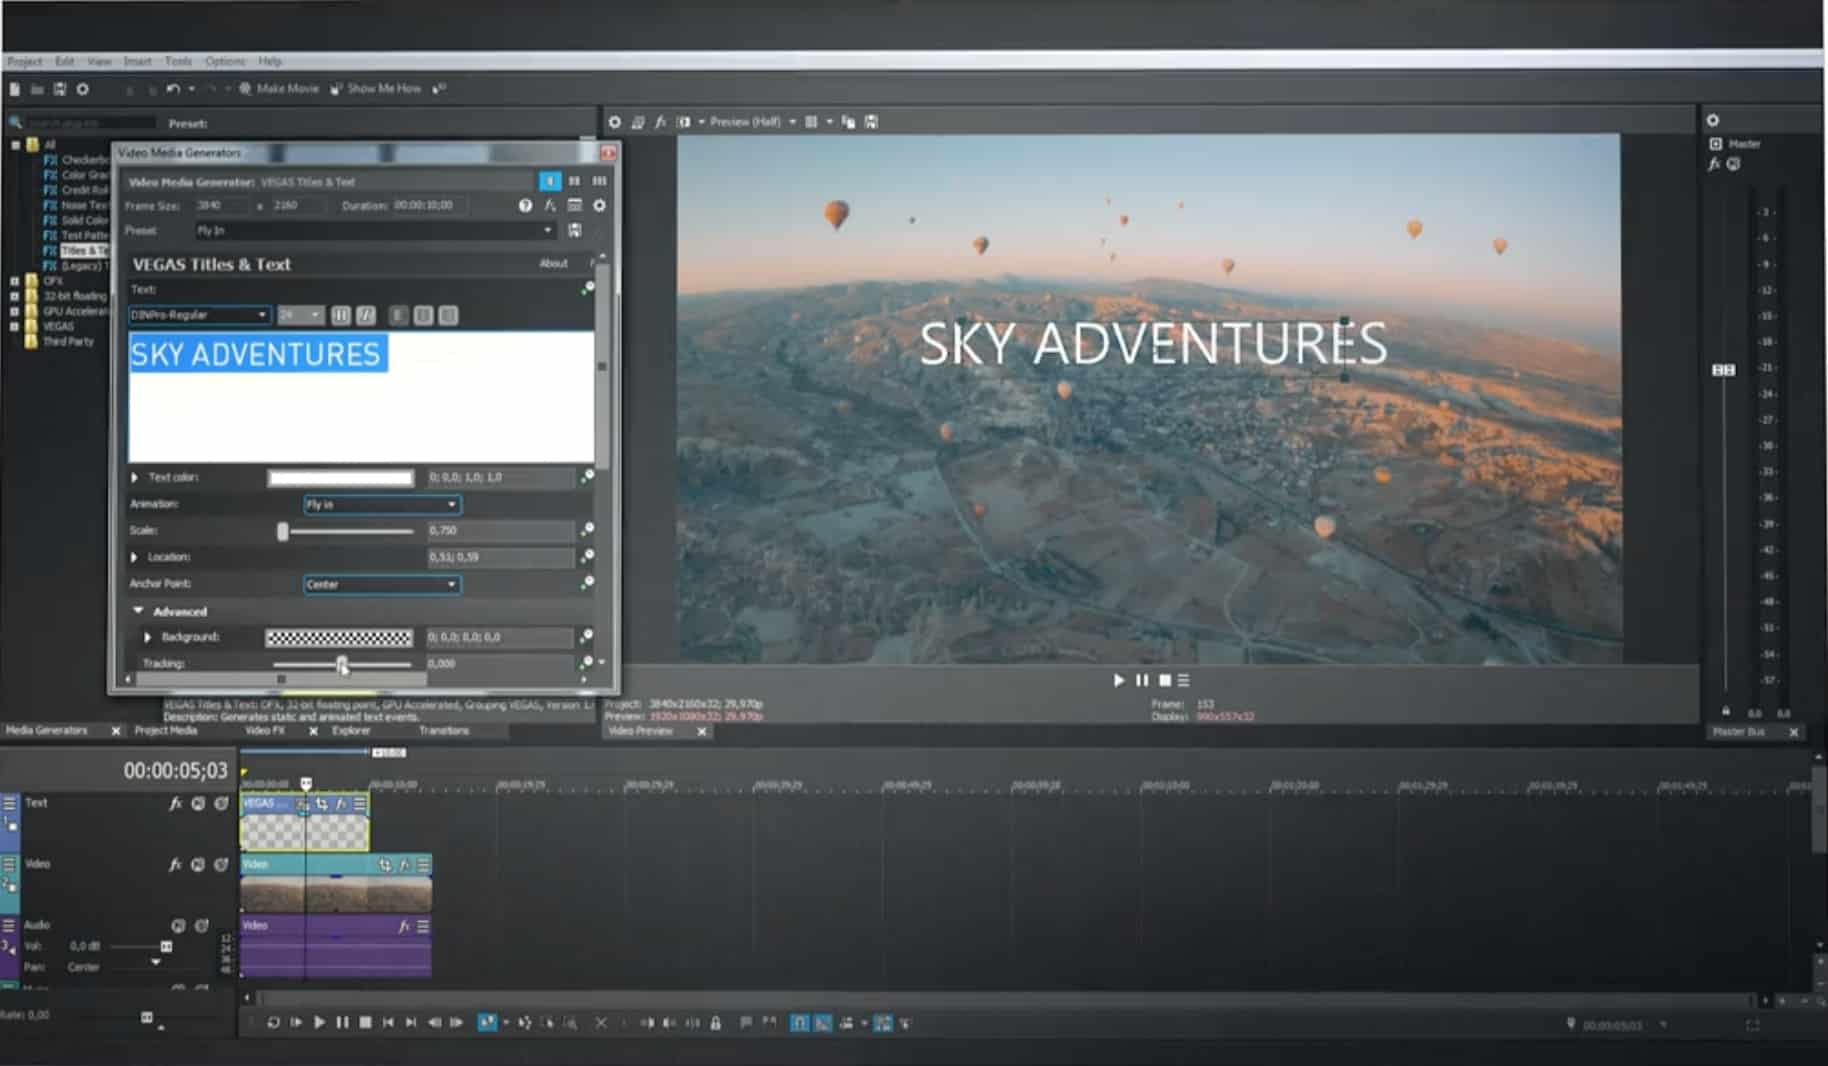 MAGIX - video editing software for novice